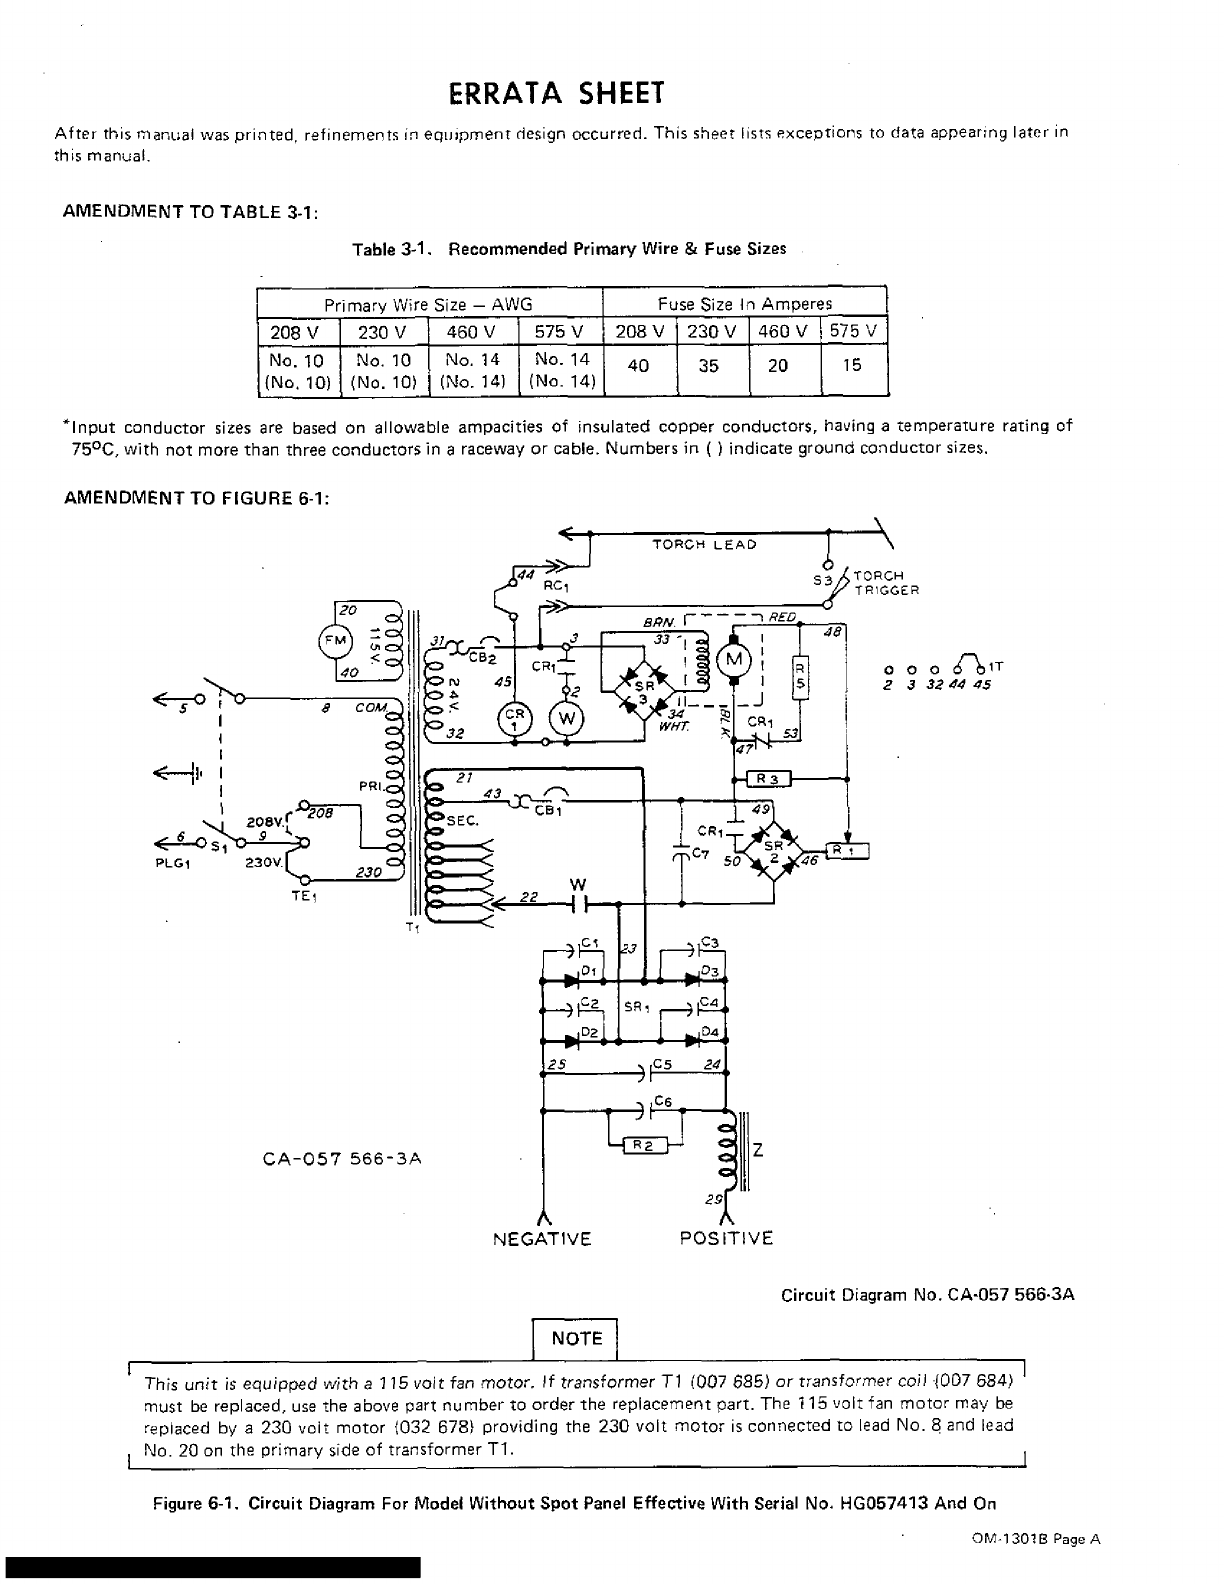 1950 Packard Wiring Diagram 2005 Dodge Caravan Wiring Diagram 1953